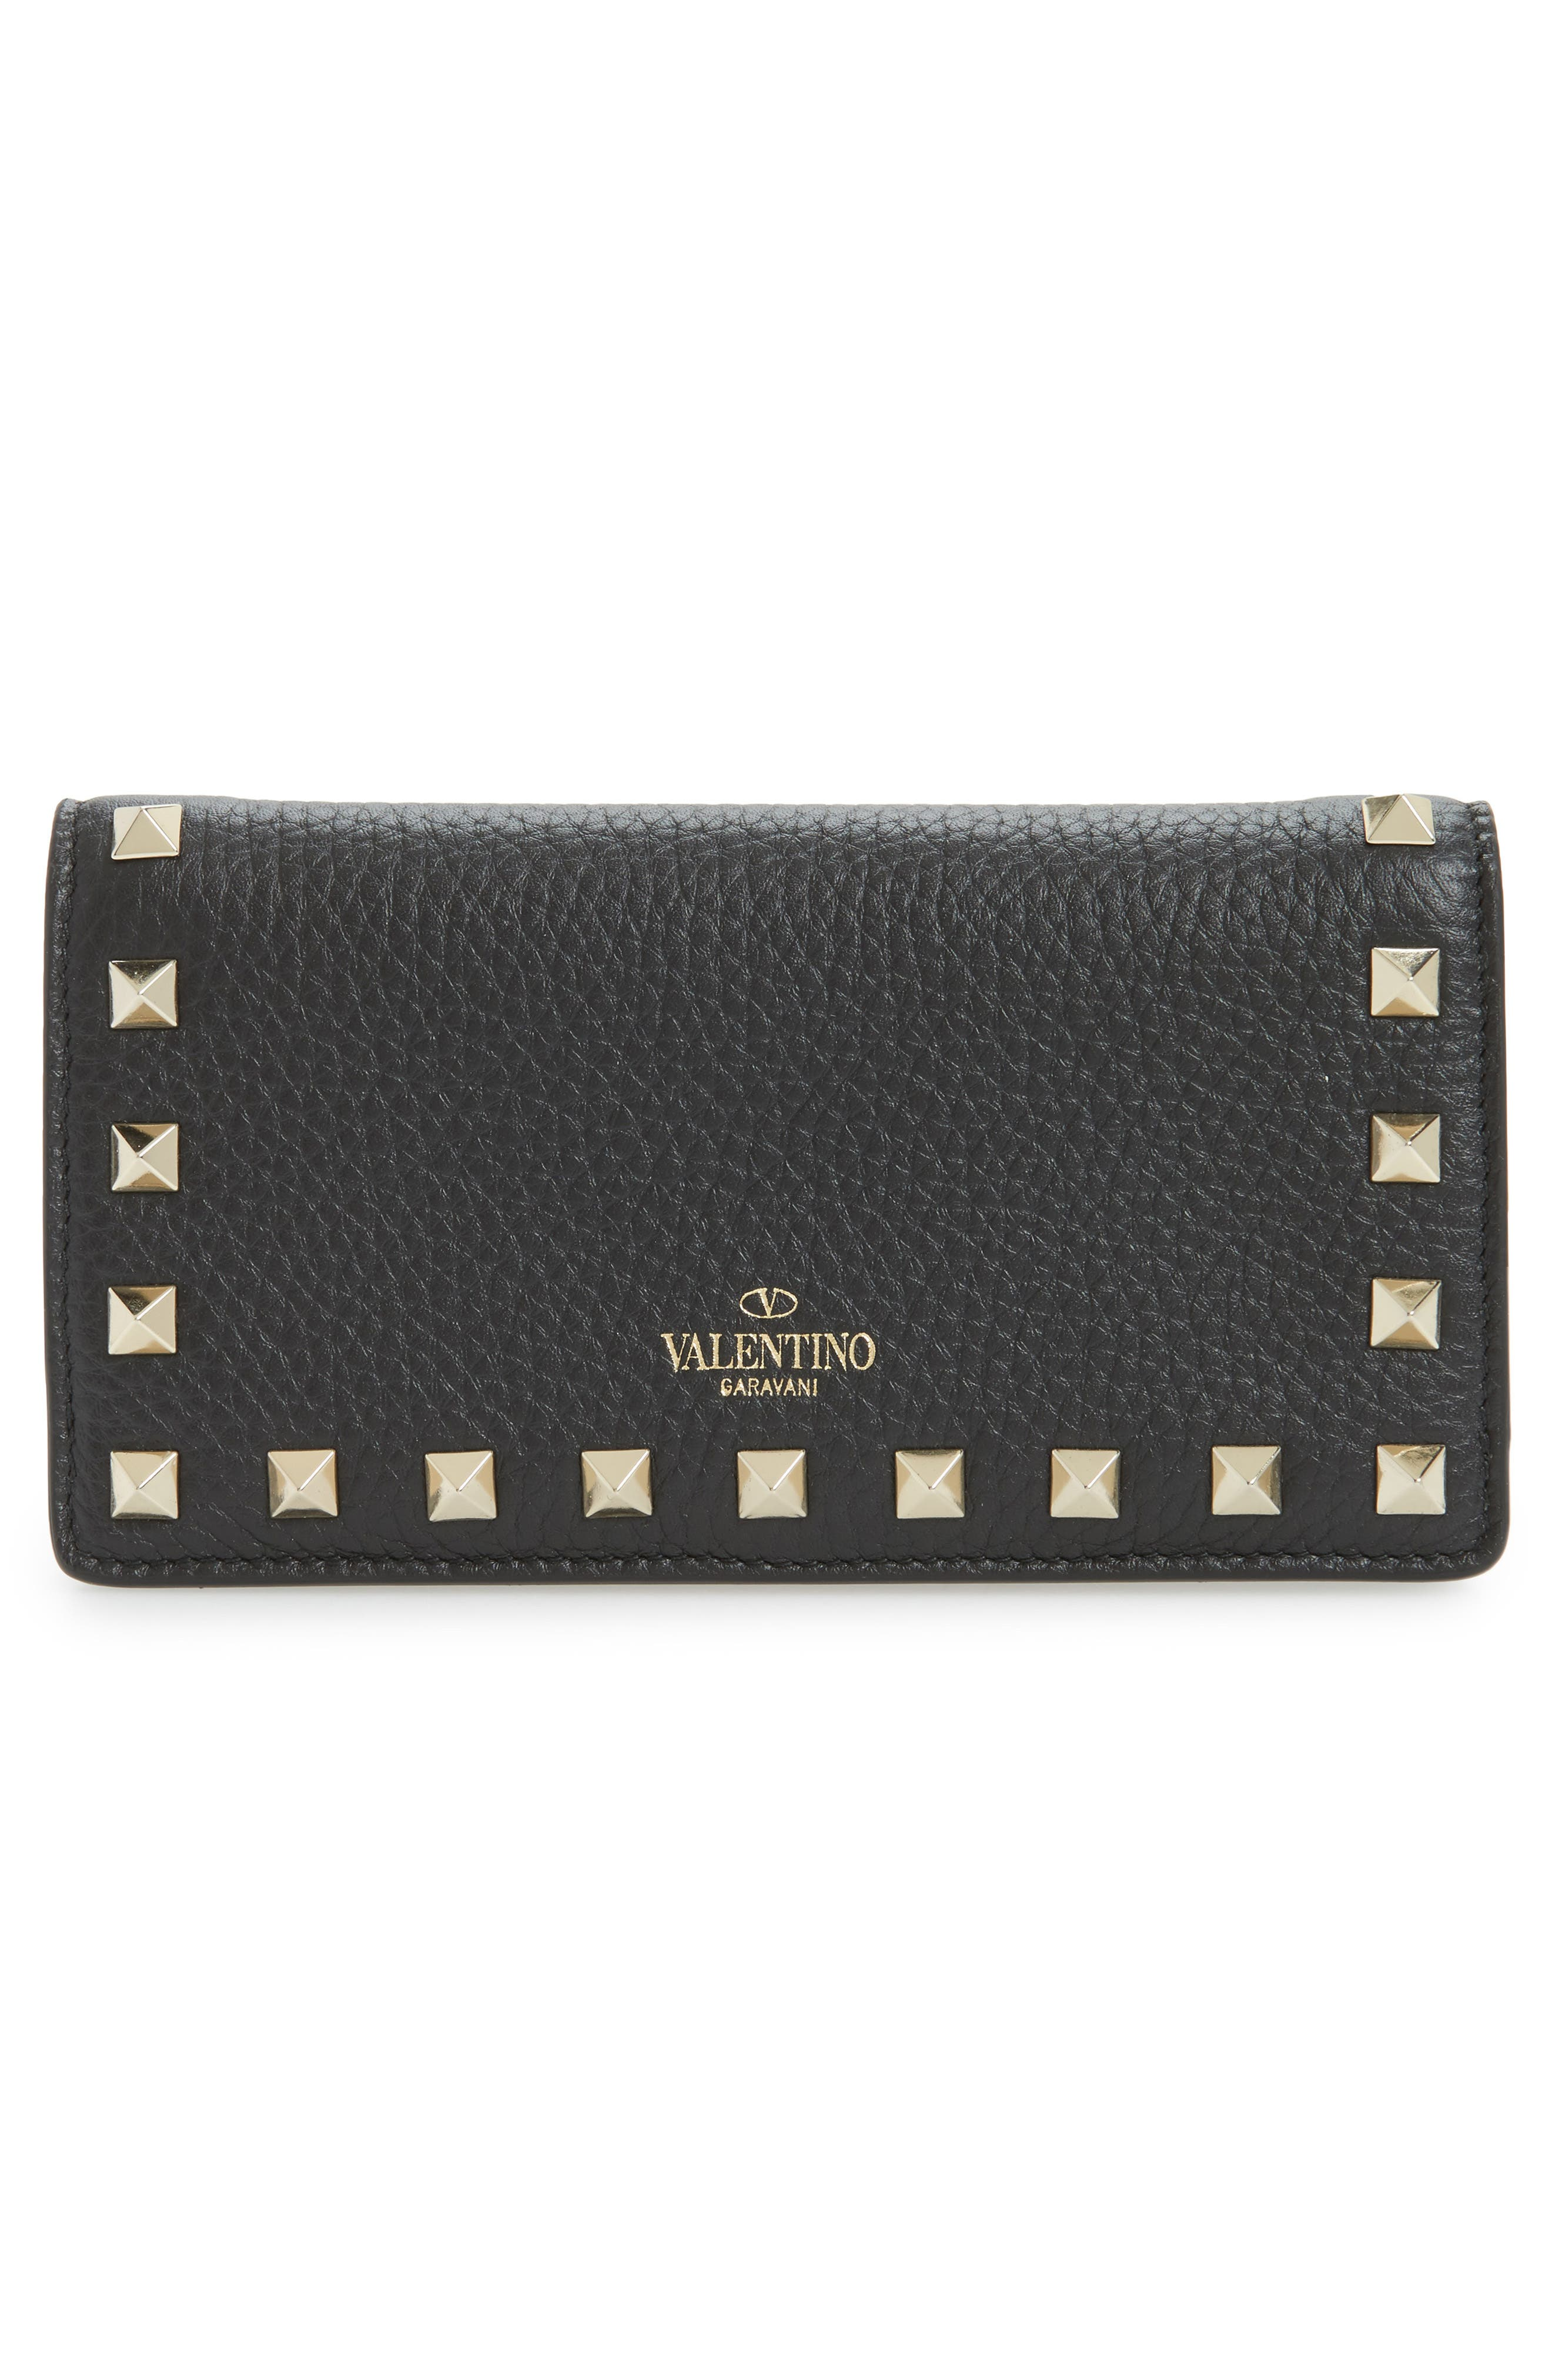 Rockstud Calfskin Leather Wallet,                             Alternate thumbnail 4, color,                             001